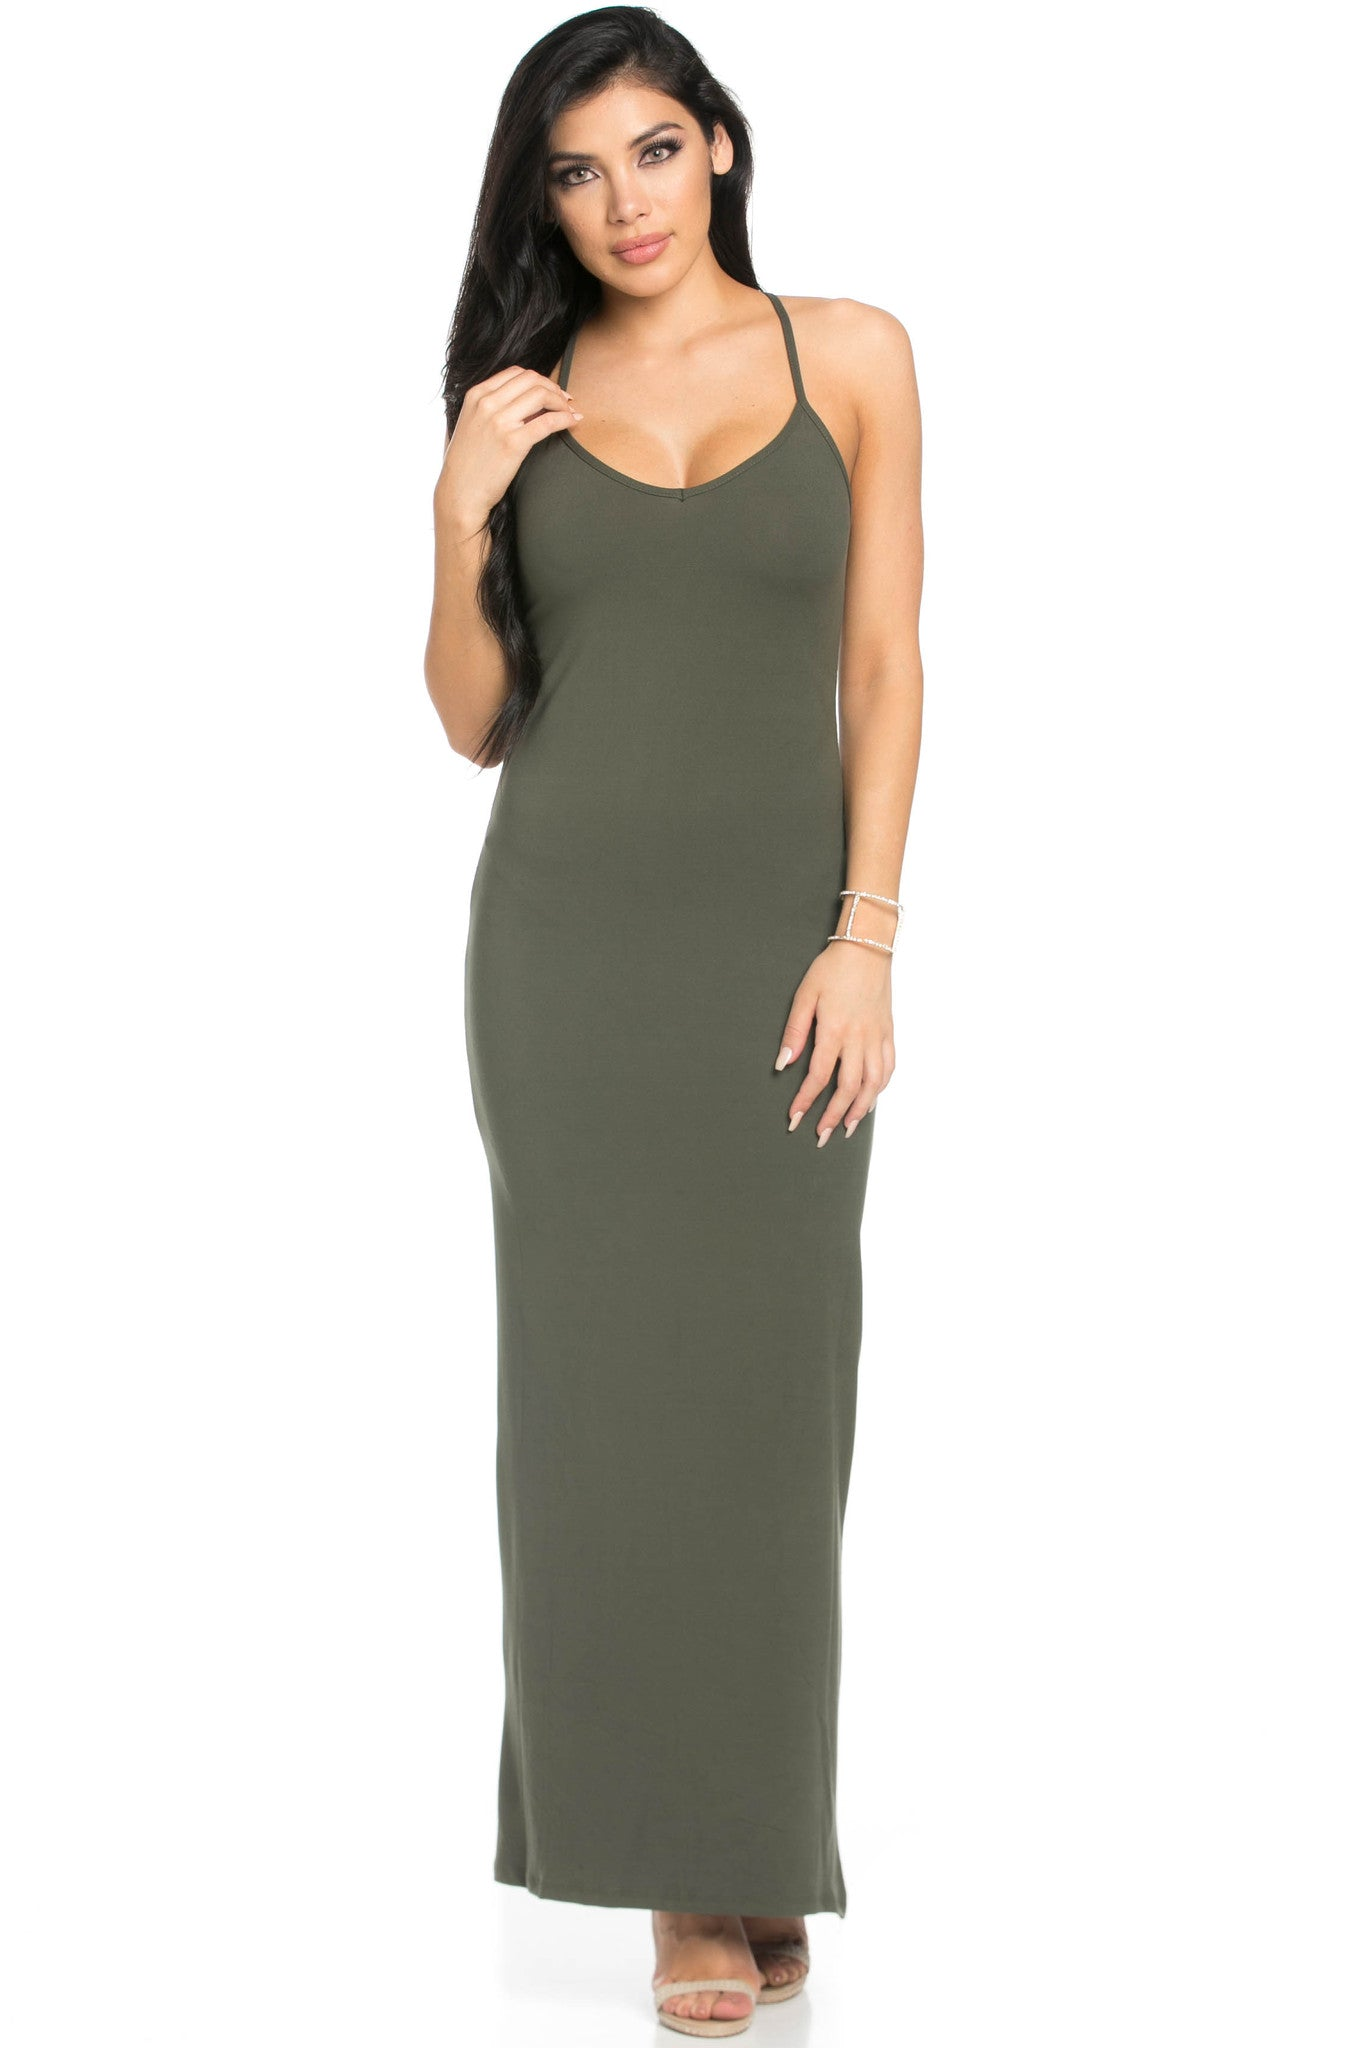 Micro Suede Olive Maxi Dress - Dresses - My Yuccie - 4